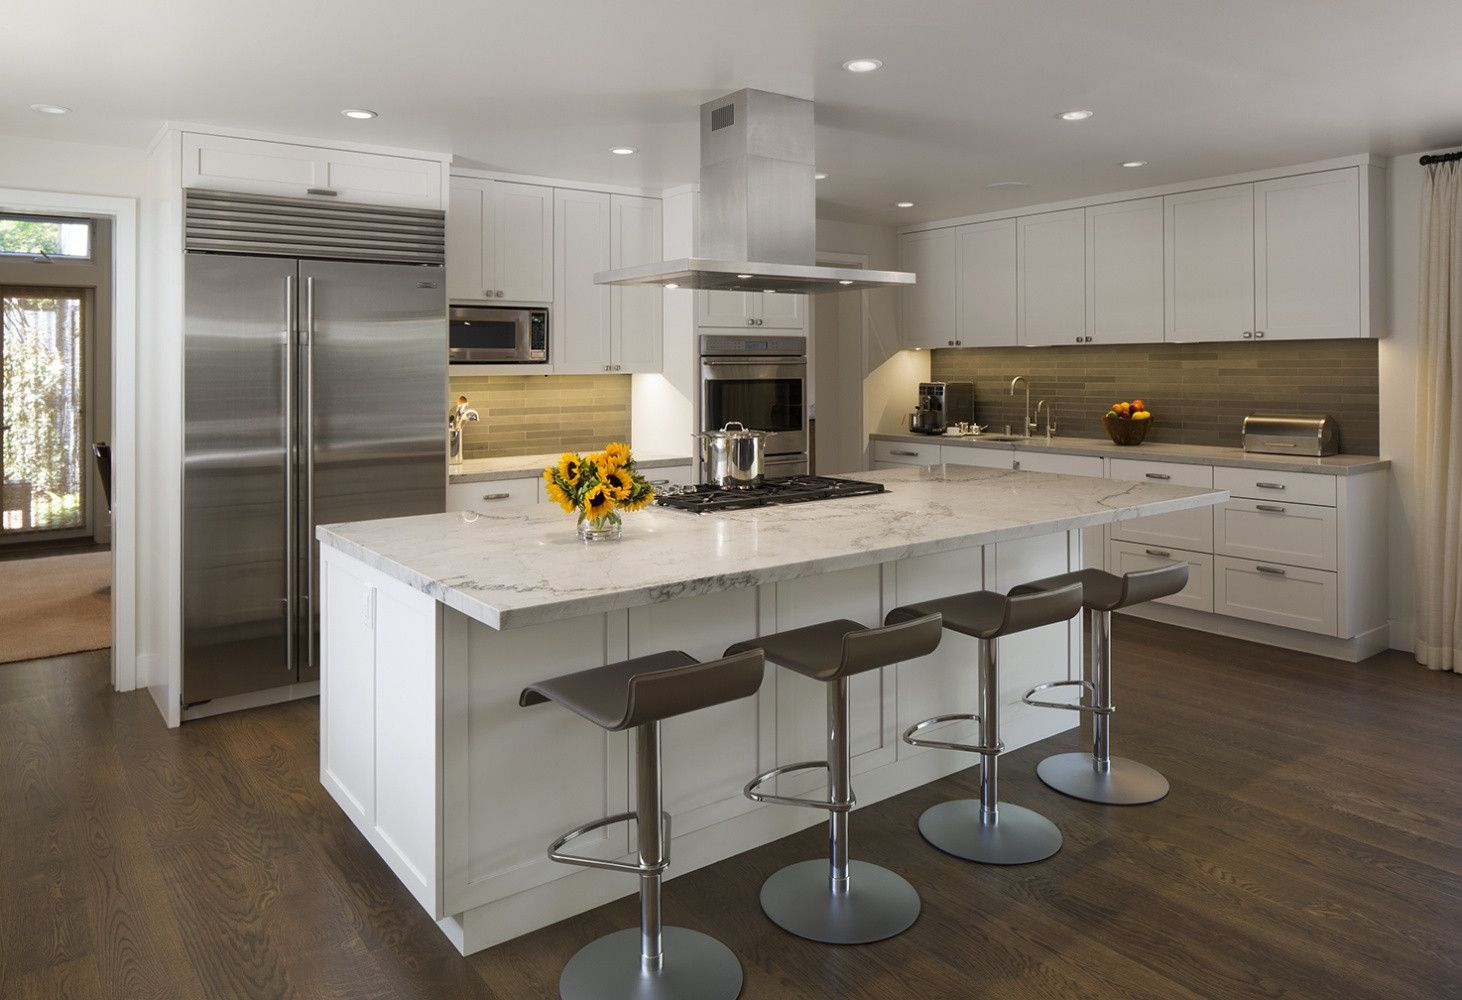 South Bay Renewal Mn Builders Construction Custom Cabinetry And Millwork Residential And Commercia In 2020 Kitchen Inspiration Design Custom Cabinetry Cabinetry